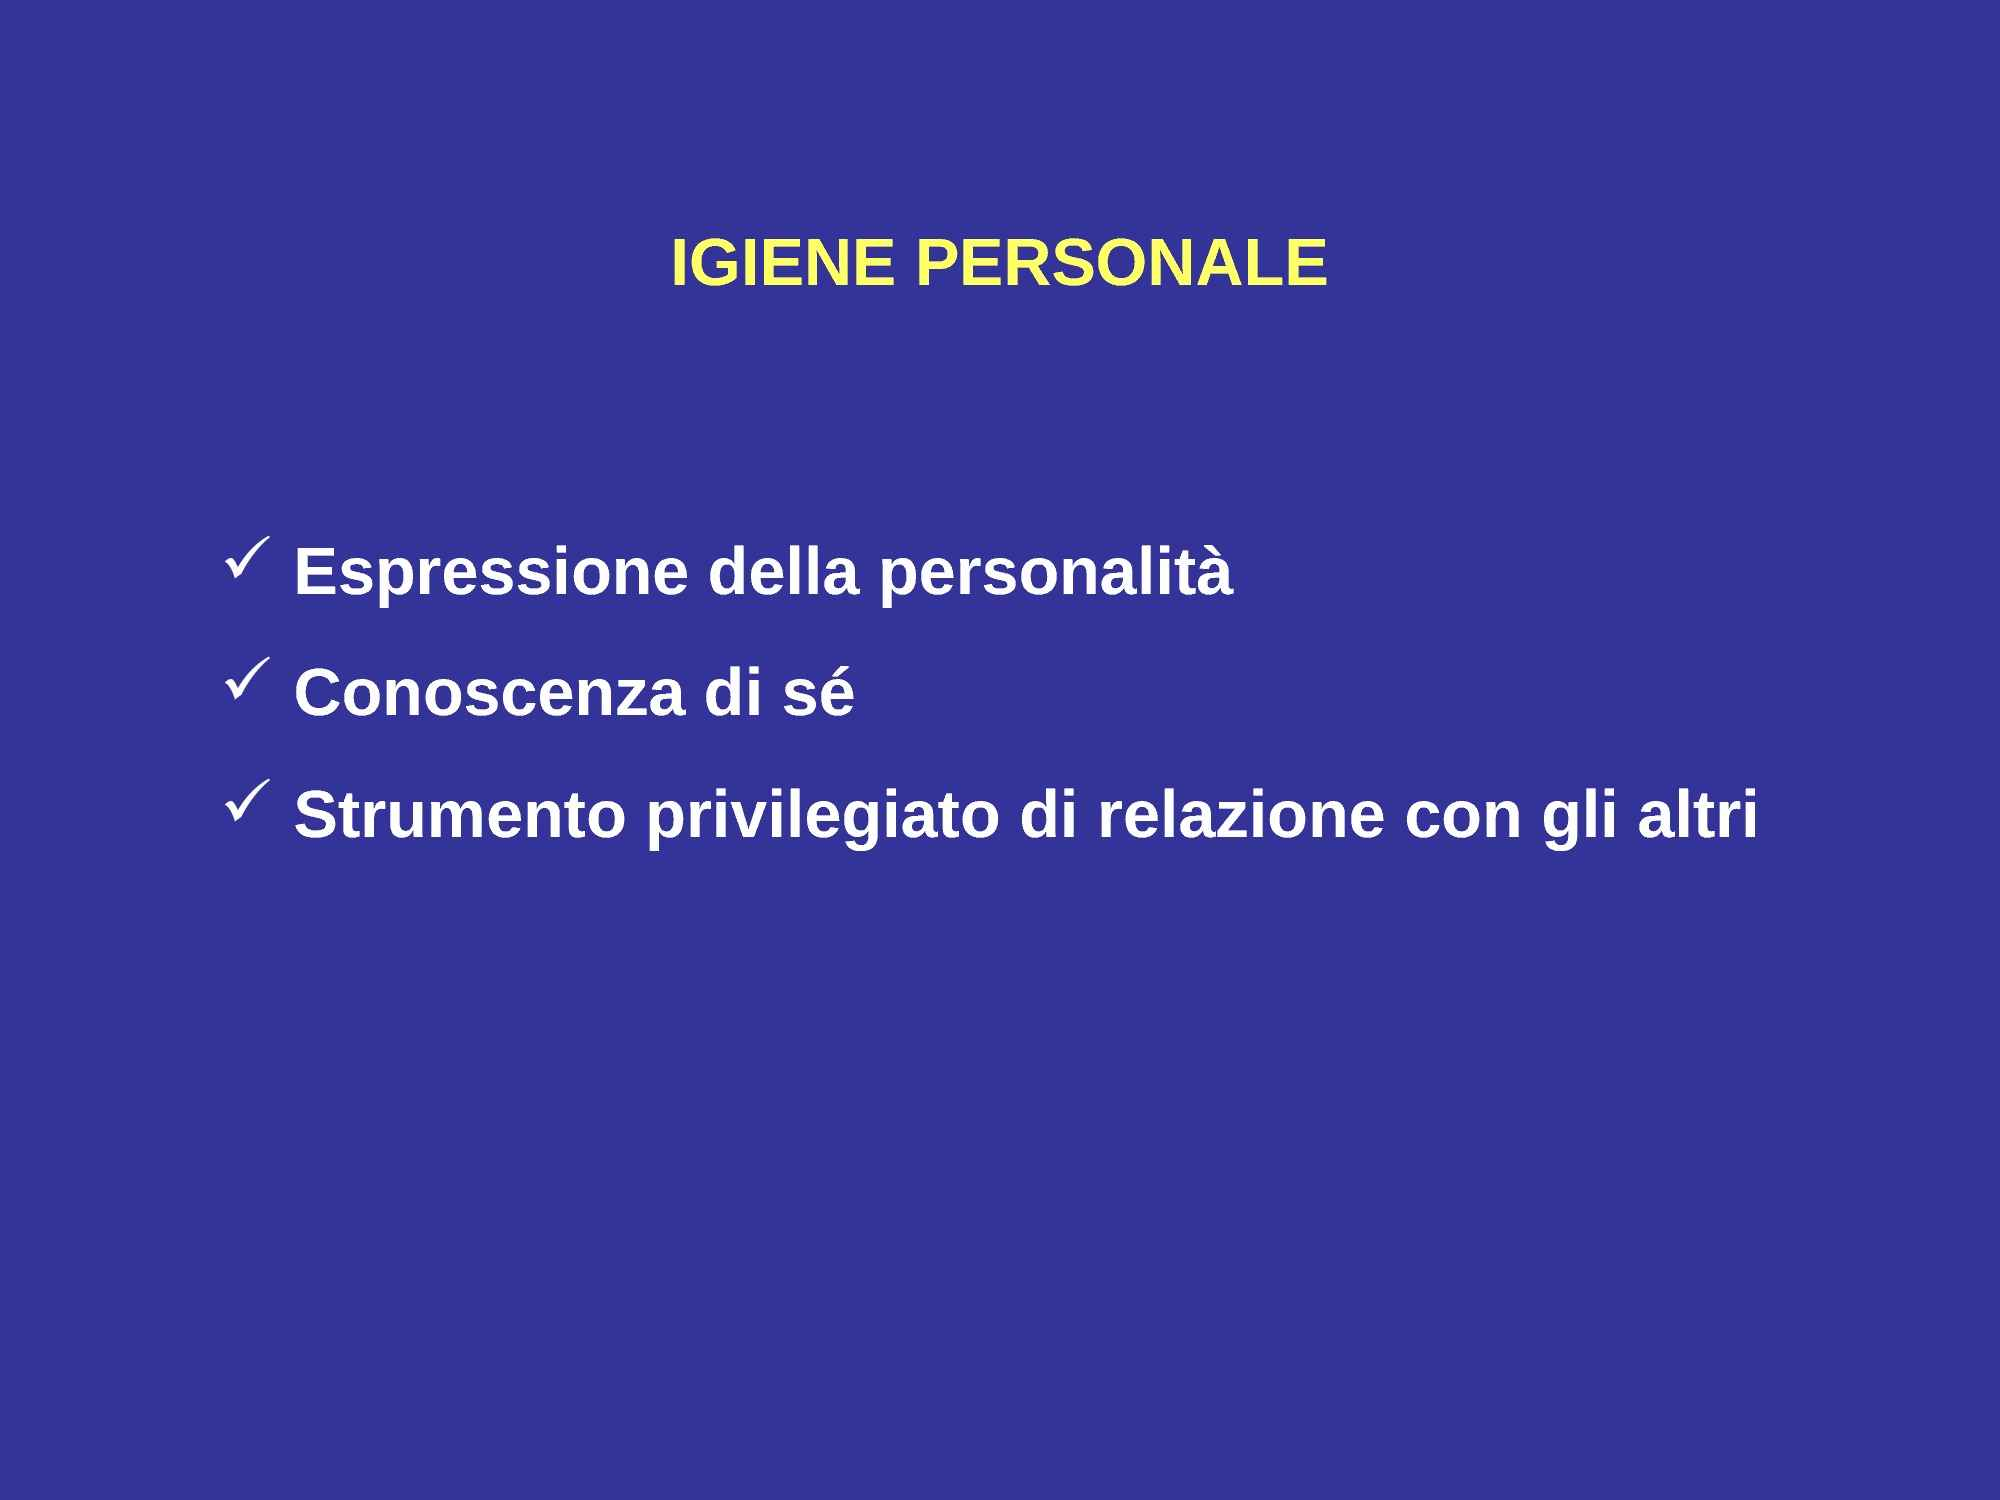 Igiene personale Pag. 1